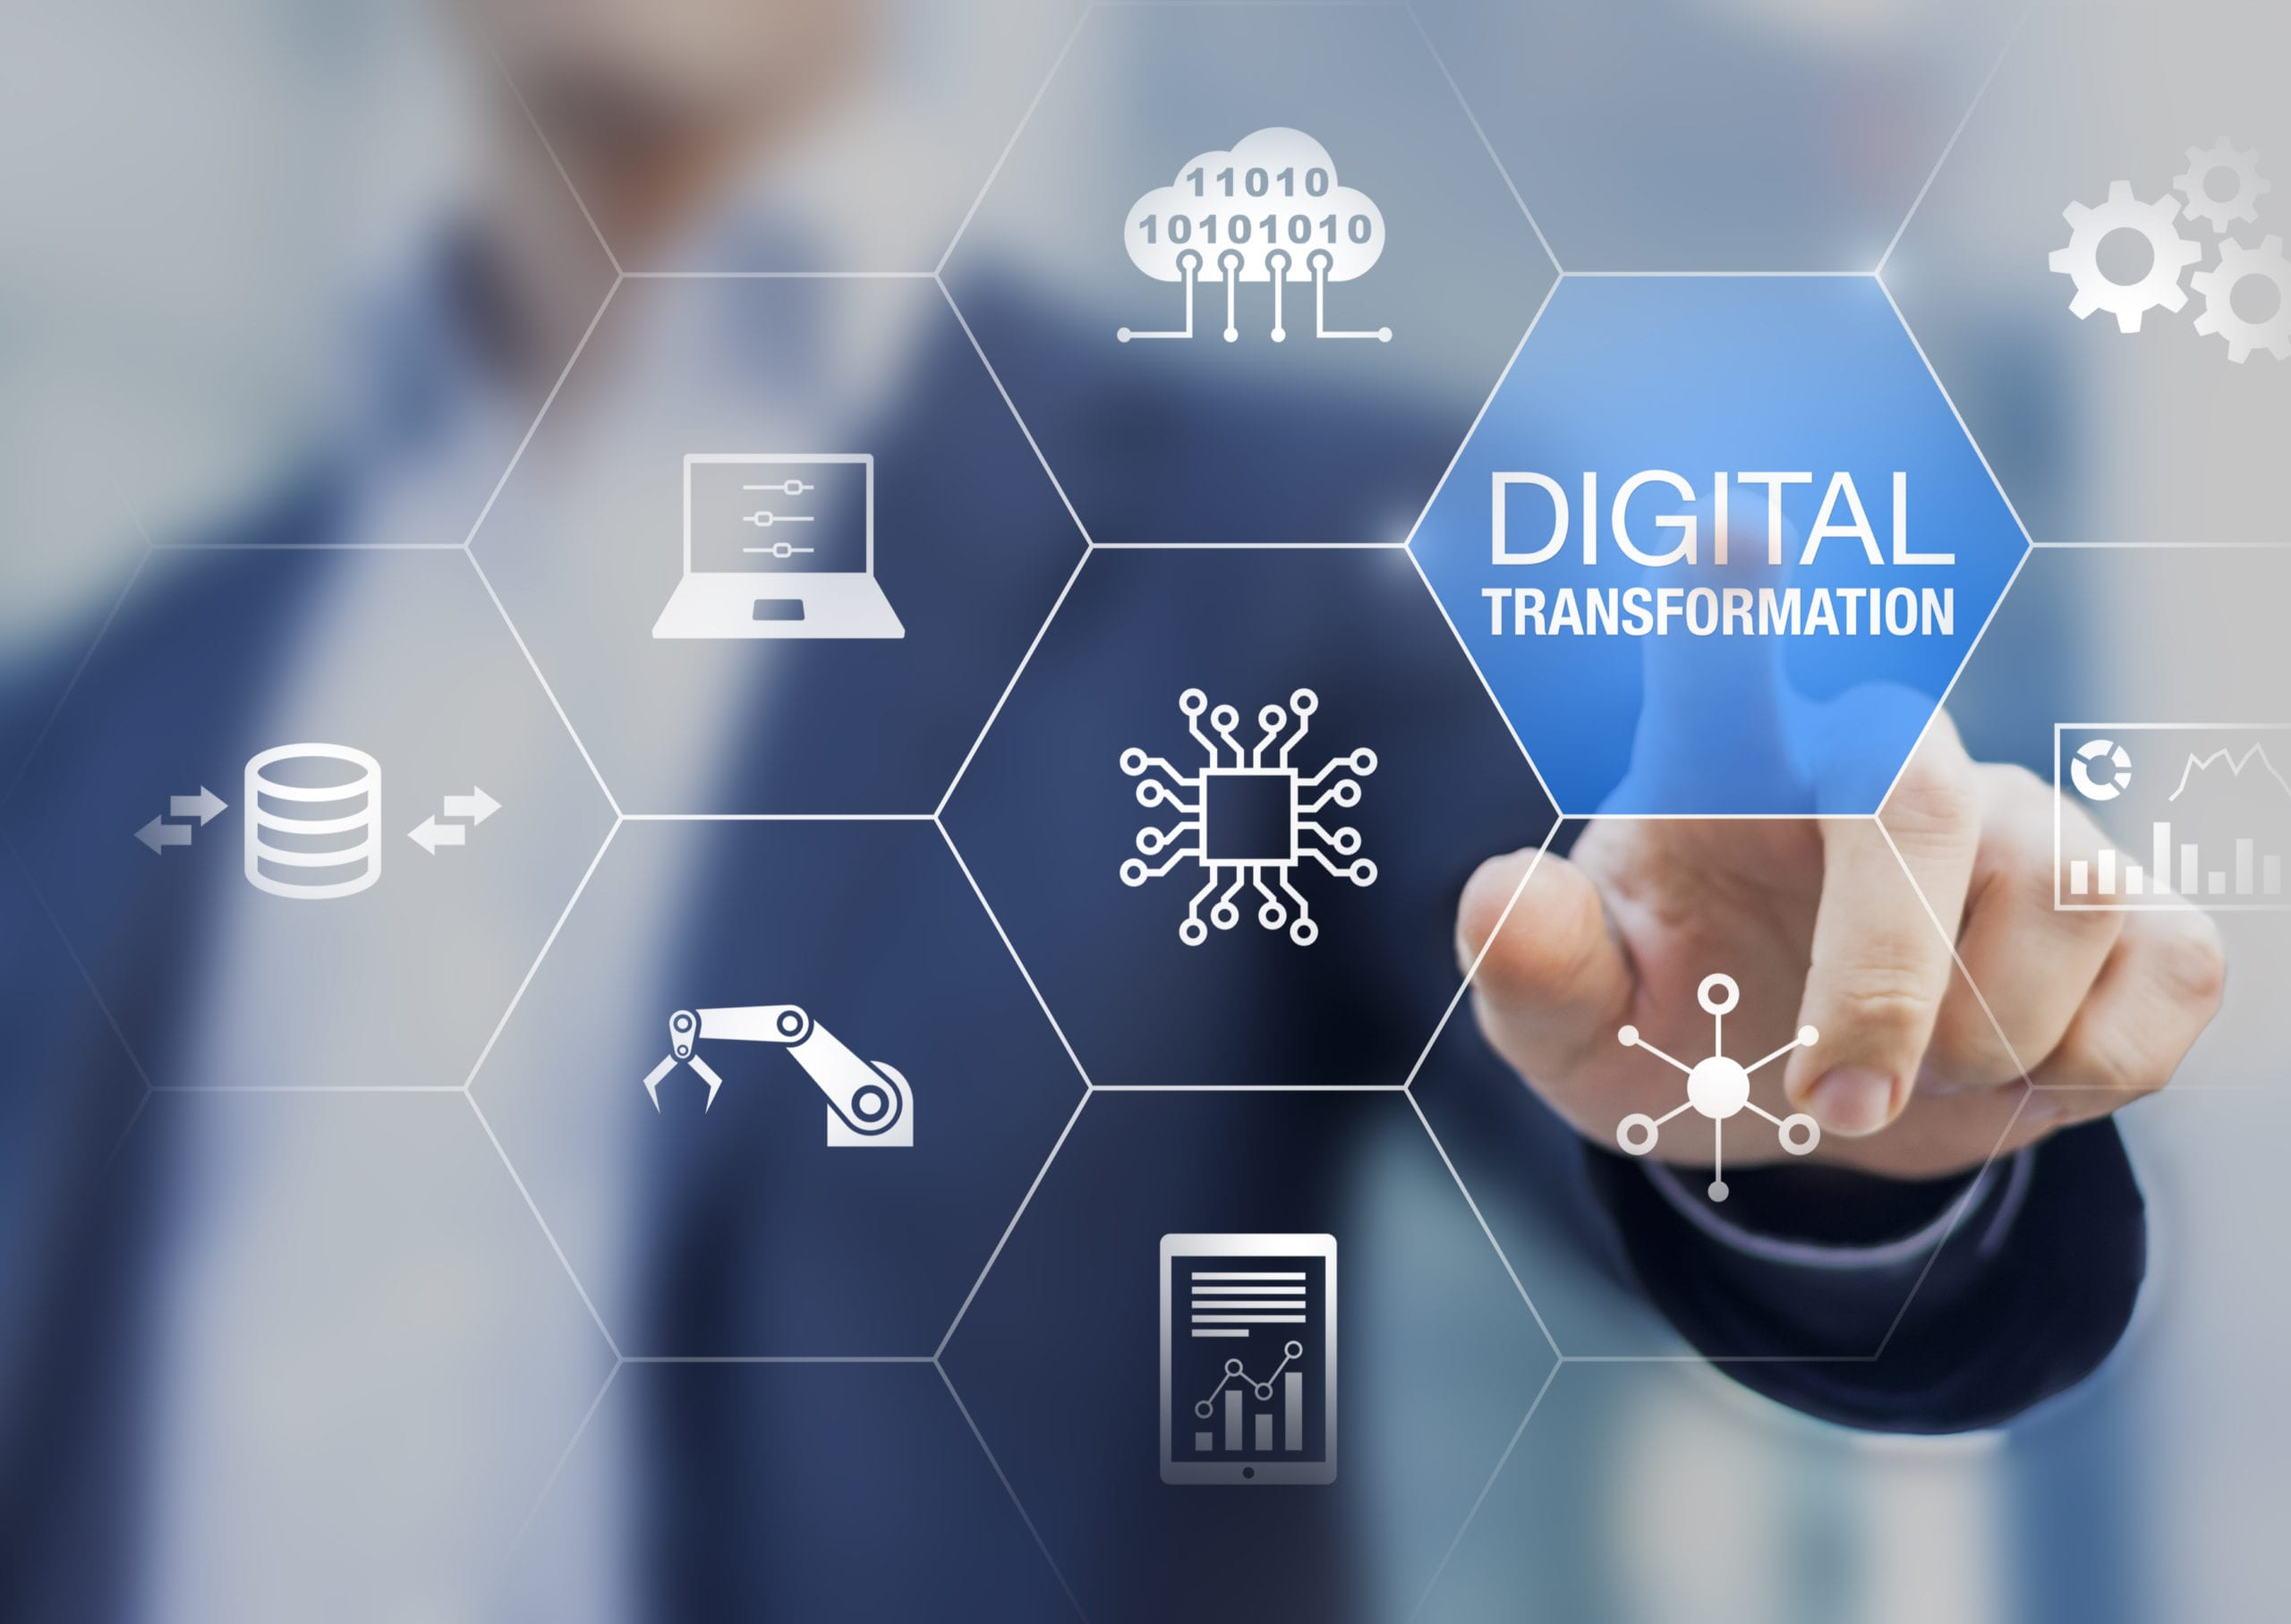 Digital transformation technology strategy, digitisation and digitalisation of business processes and data, optimise and automate operations, customer service management, internet and cloud computing